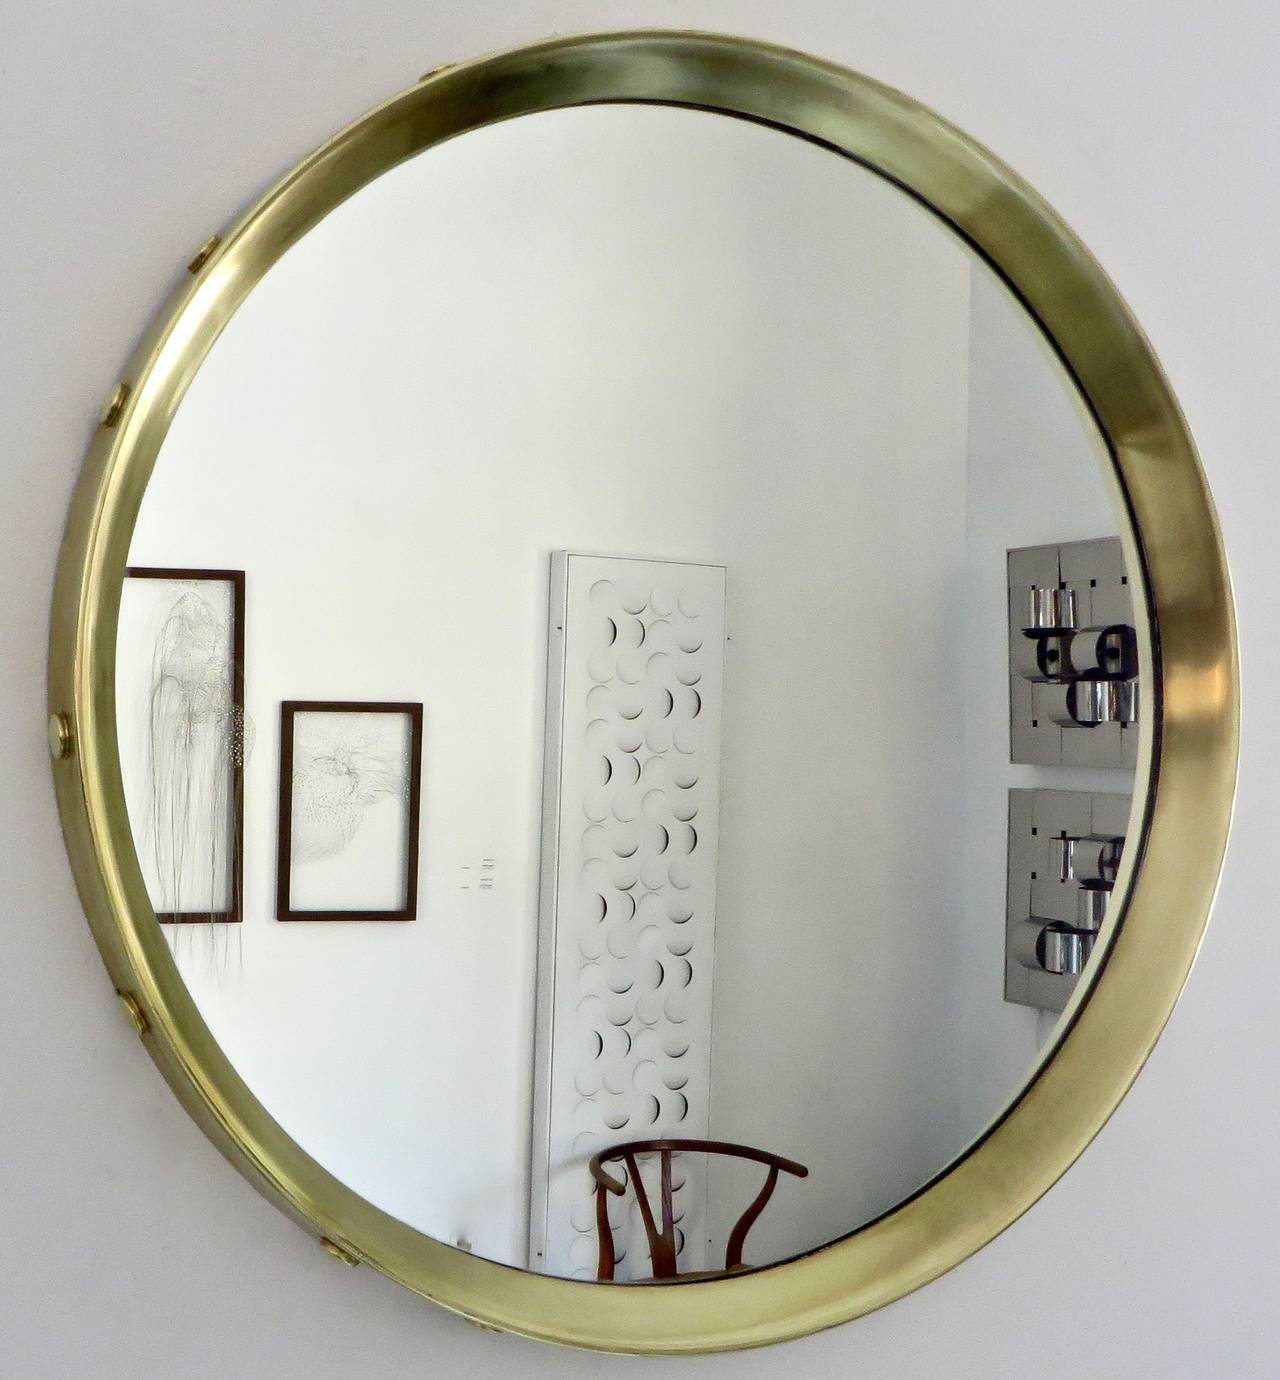 Italian round brass framed mirror with decorative buttons Round framed mirror